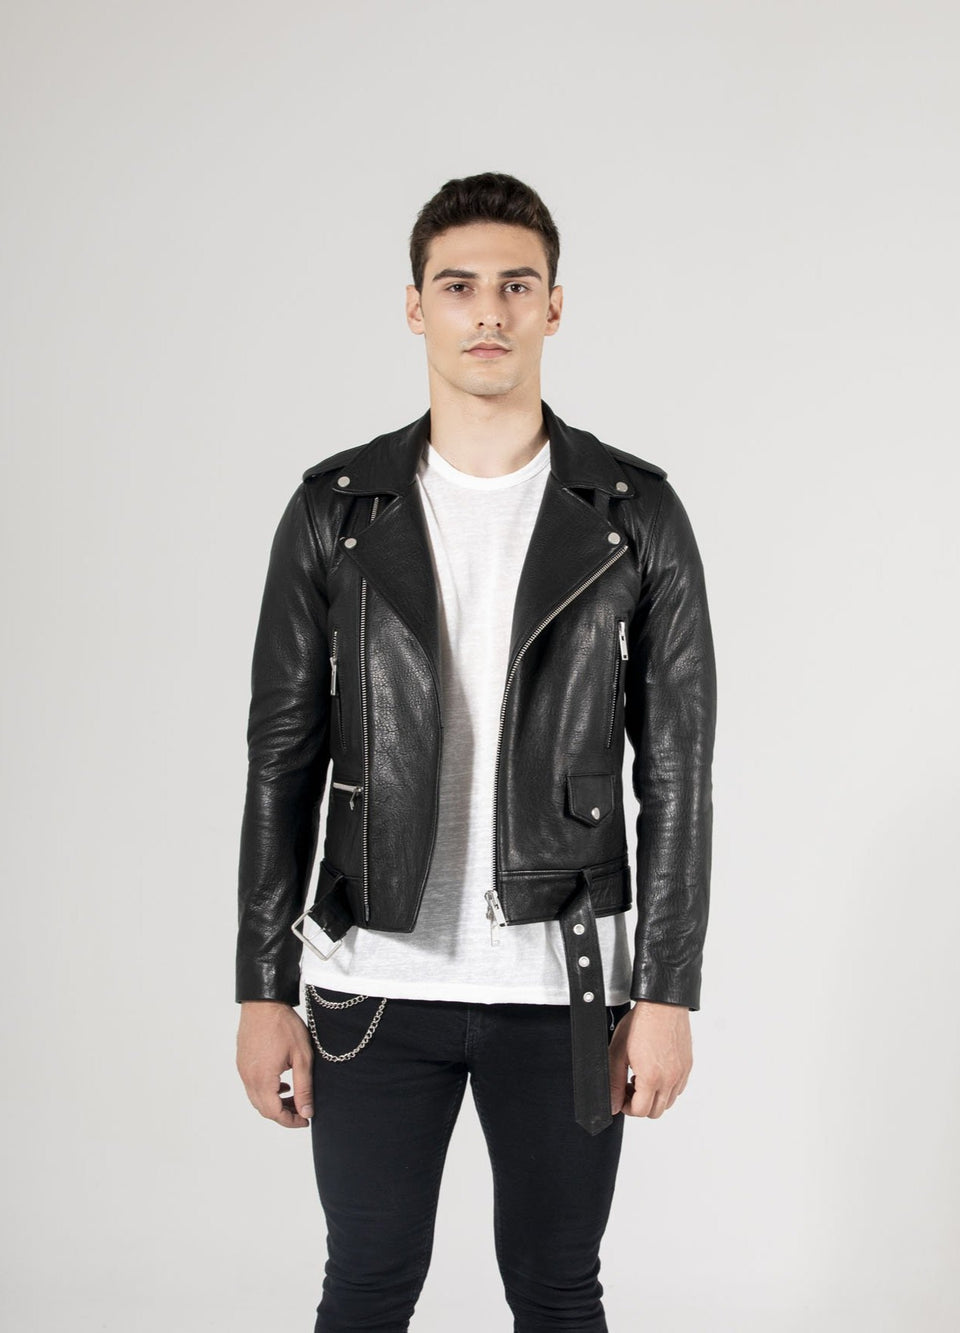 Chris - Black Stylish Zipper Laather Jacket For Men's 2020